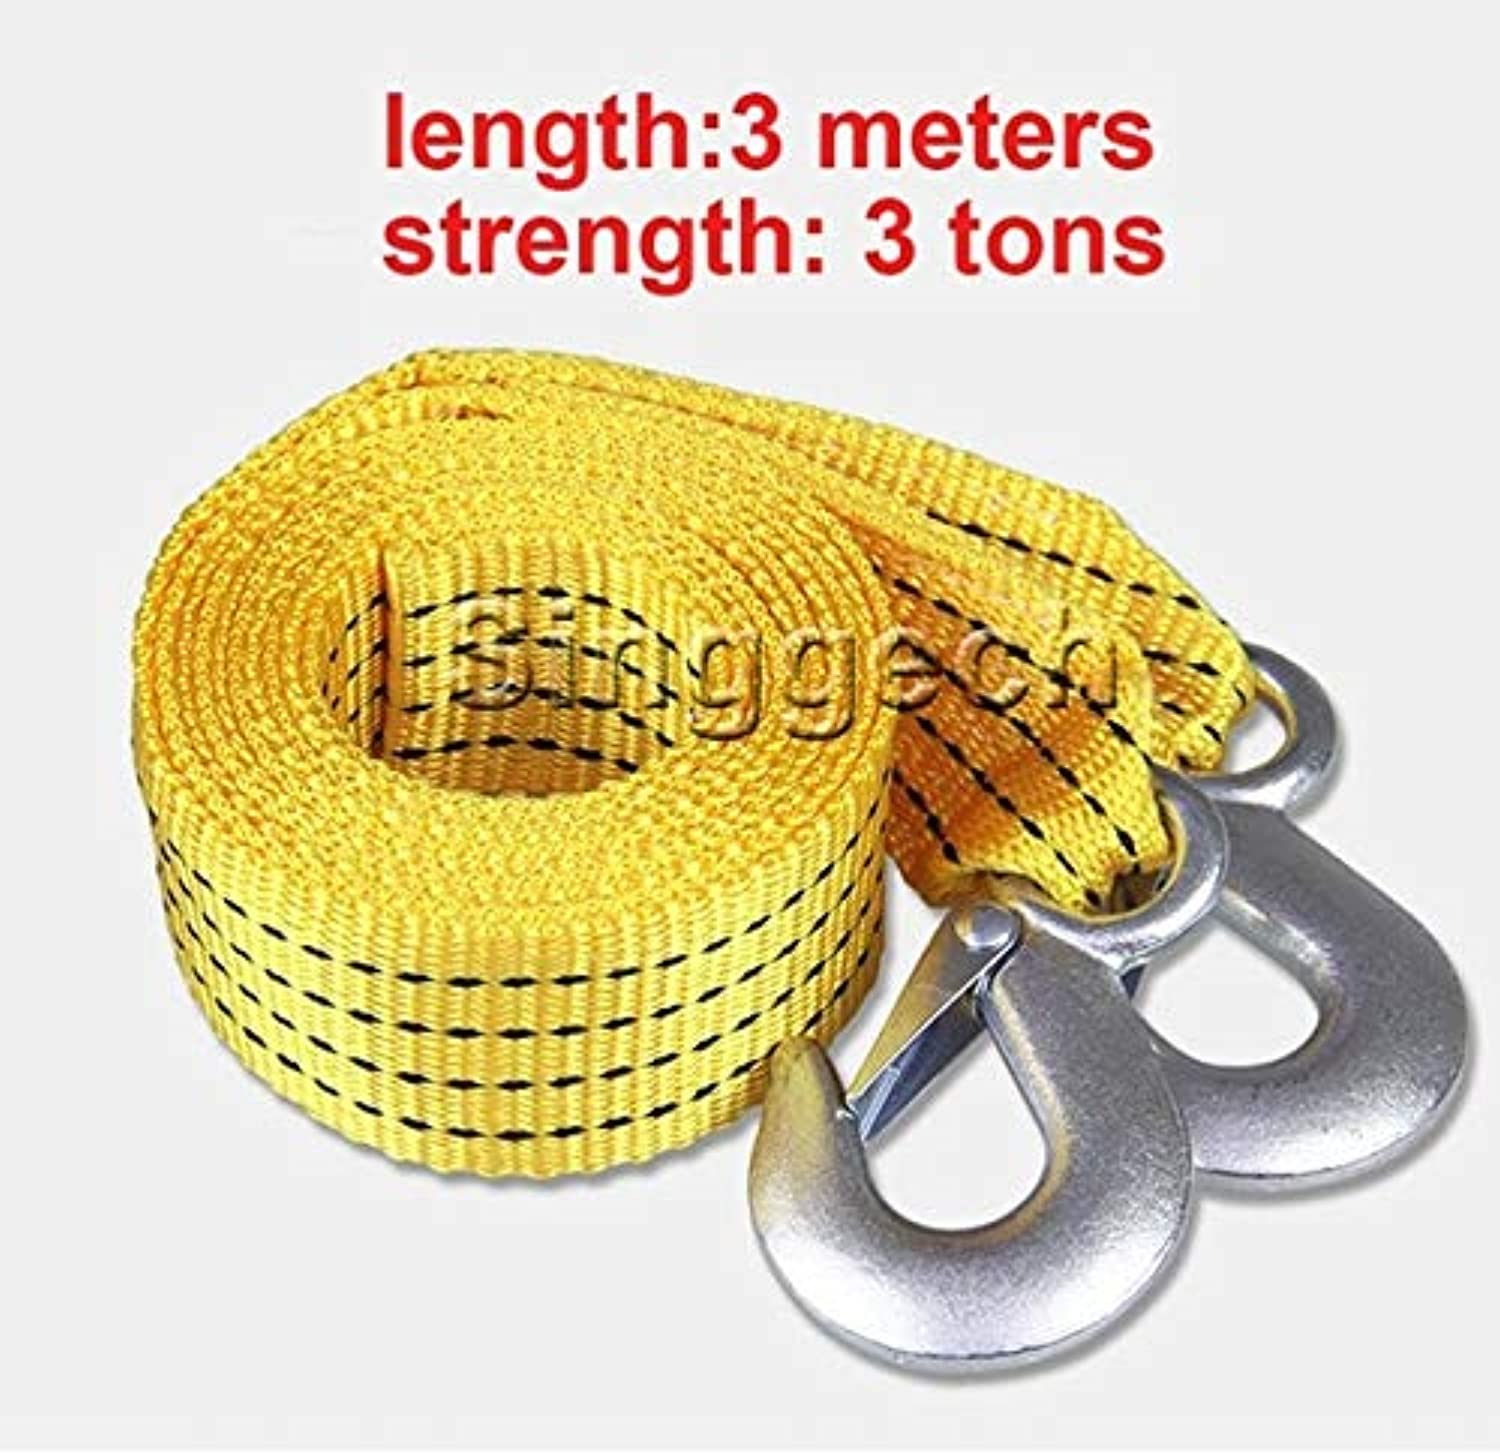 1X Car Towing Rope 3 Meters 3 Tons for Nissan Qashqai XTrail Juke TIIDA Note Almera March for Mazda 3 6 2 CX5 CX5 CX7  (color Name  3 Meters)